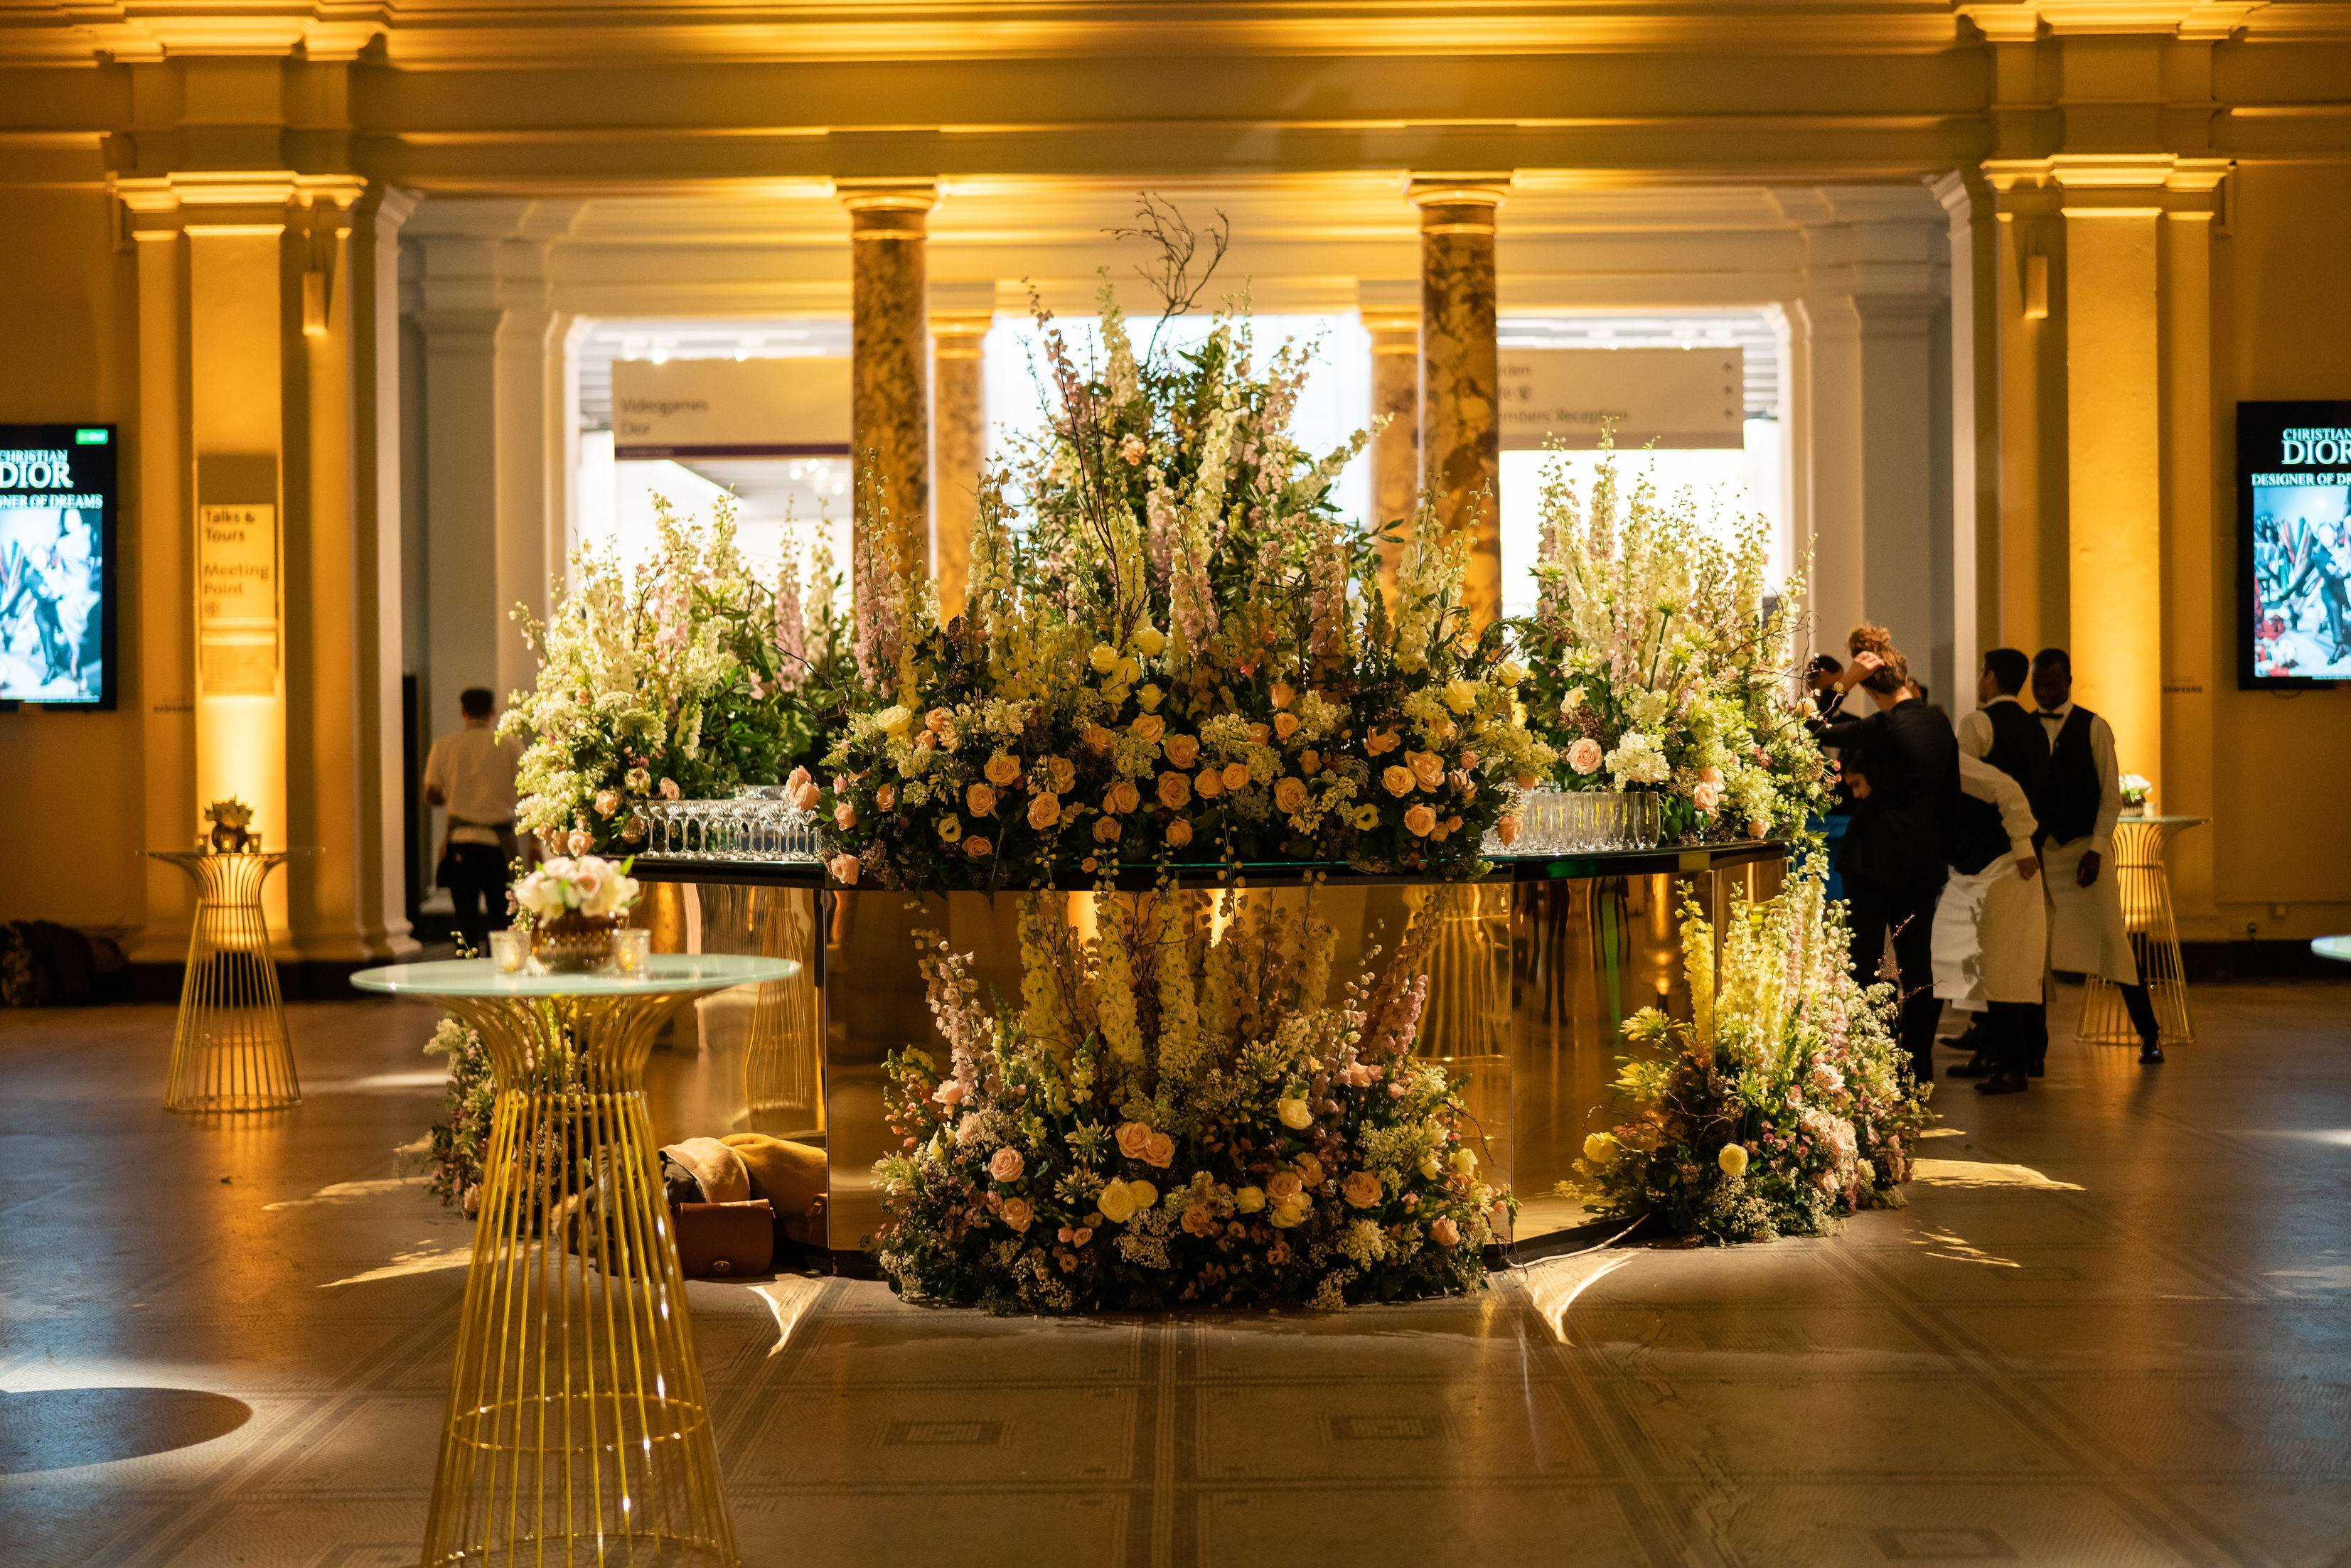 Flower meadow bar, gold wrapped bar, flower wrapped bar, The Dome V&A, London event planners at the V&A